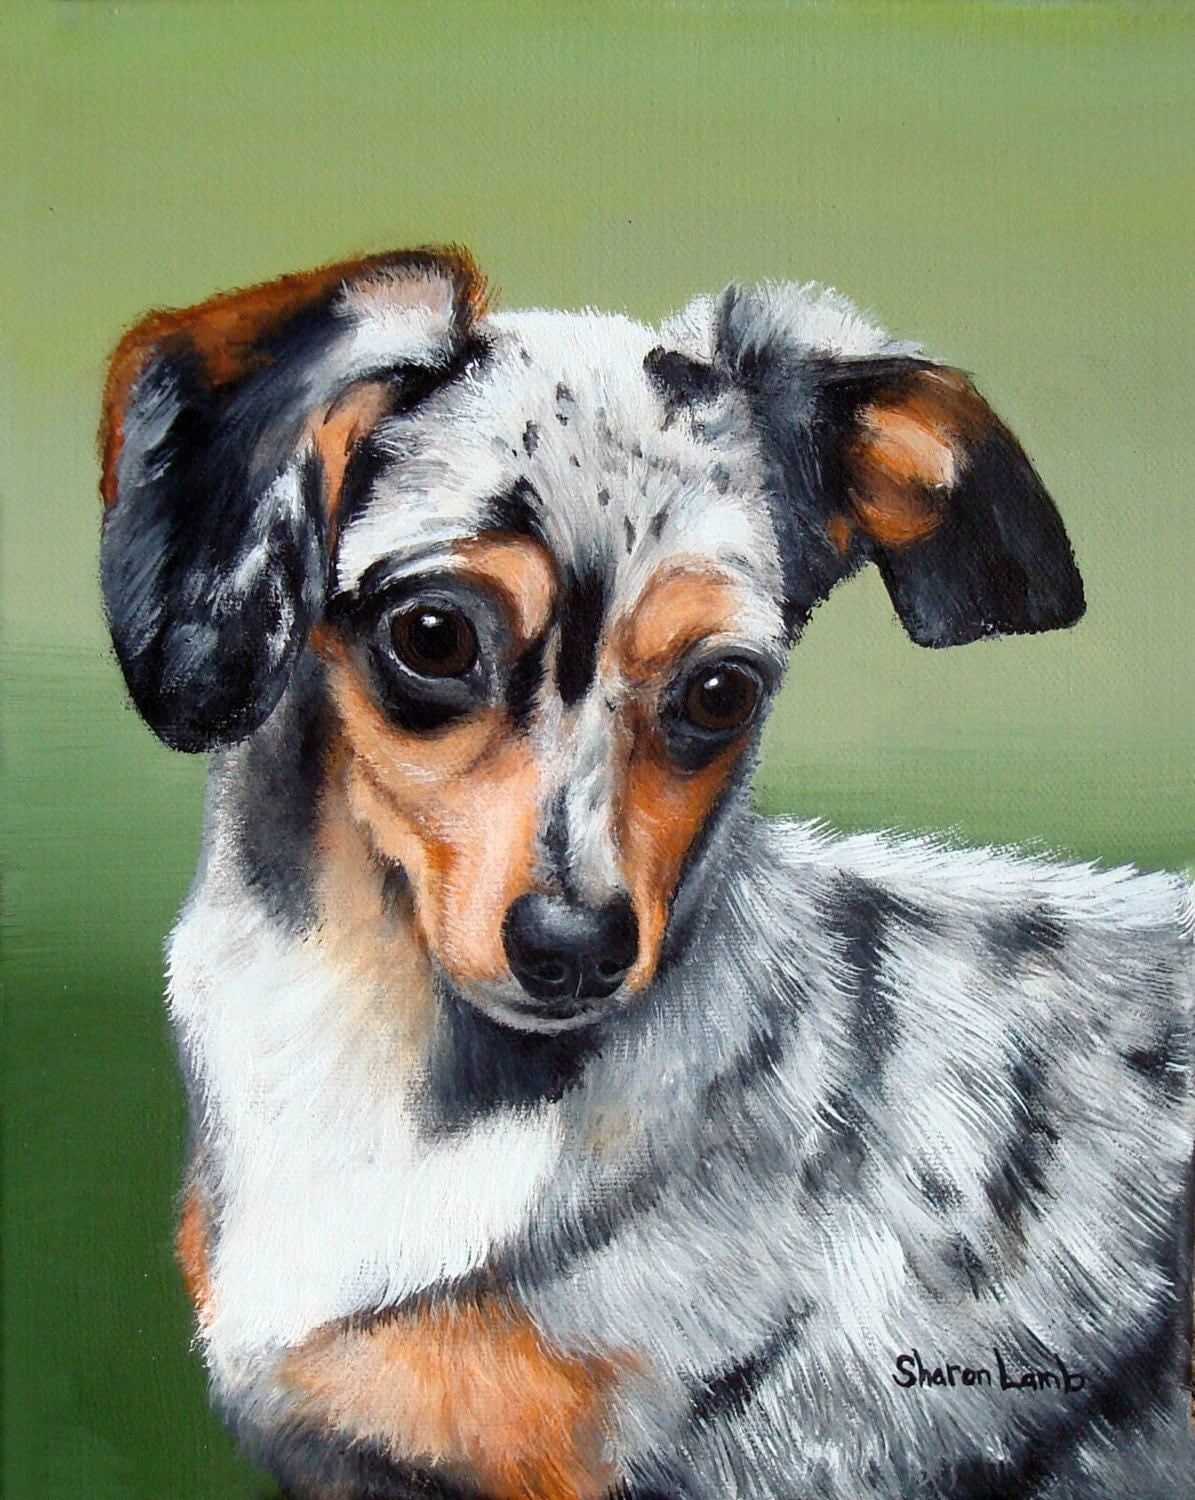 Hand Painted 8x10 Custom Commissioned Pet Portrait Painting any Animal Dog Cat or Horse